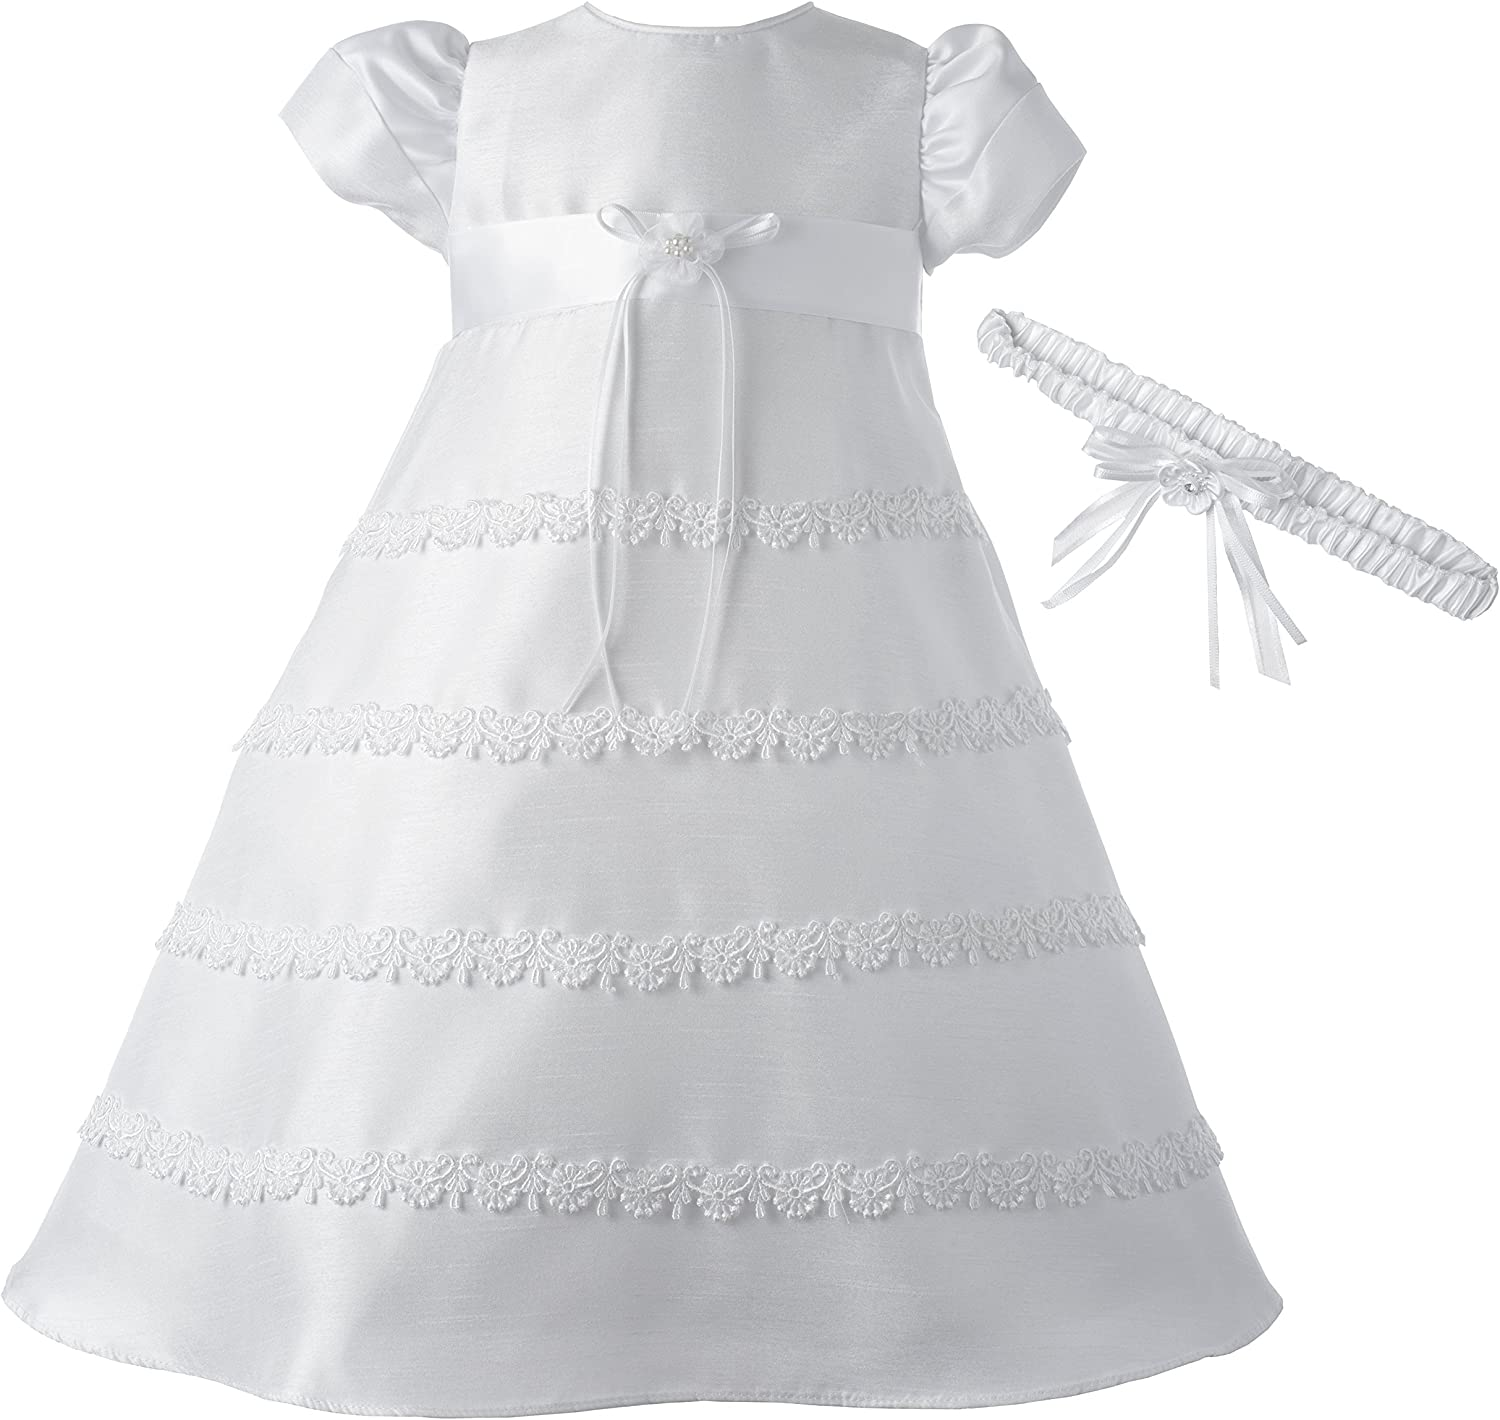 Lauren Madison Baby-Girls Newborn Special Occasion Shantung Dress Gown Outfit